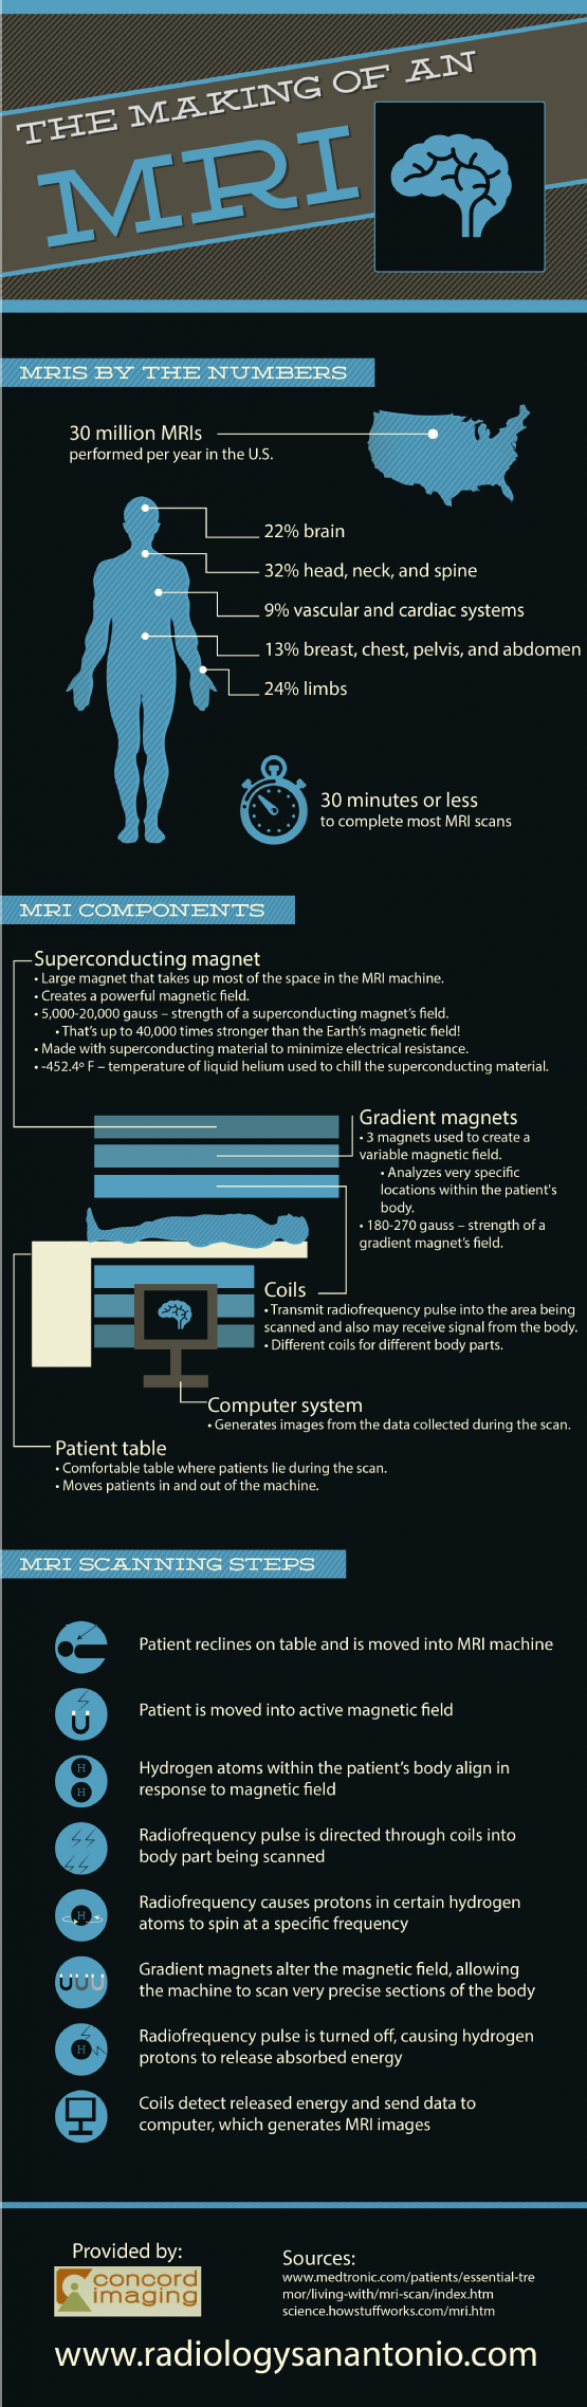 The Making of an MRI